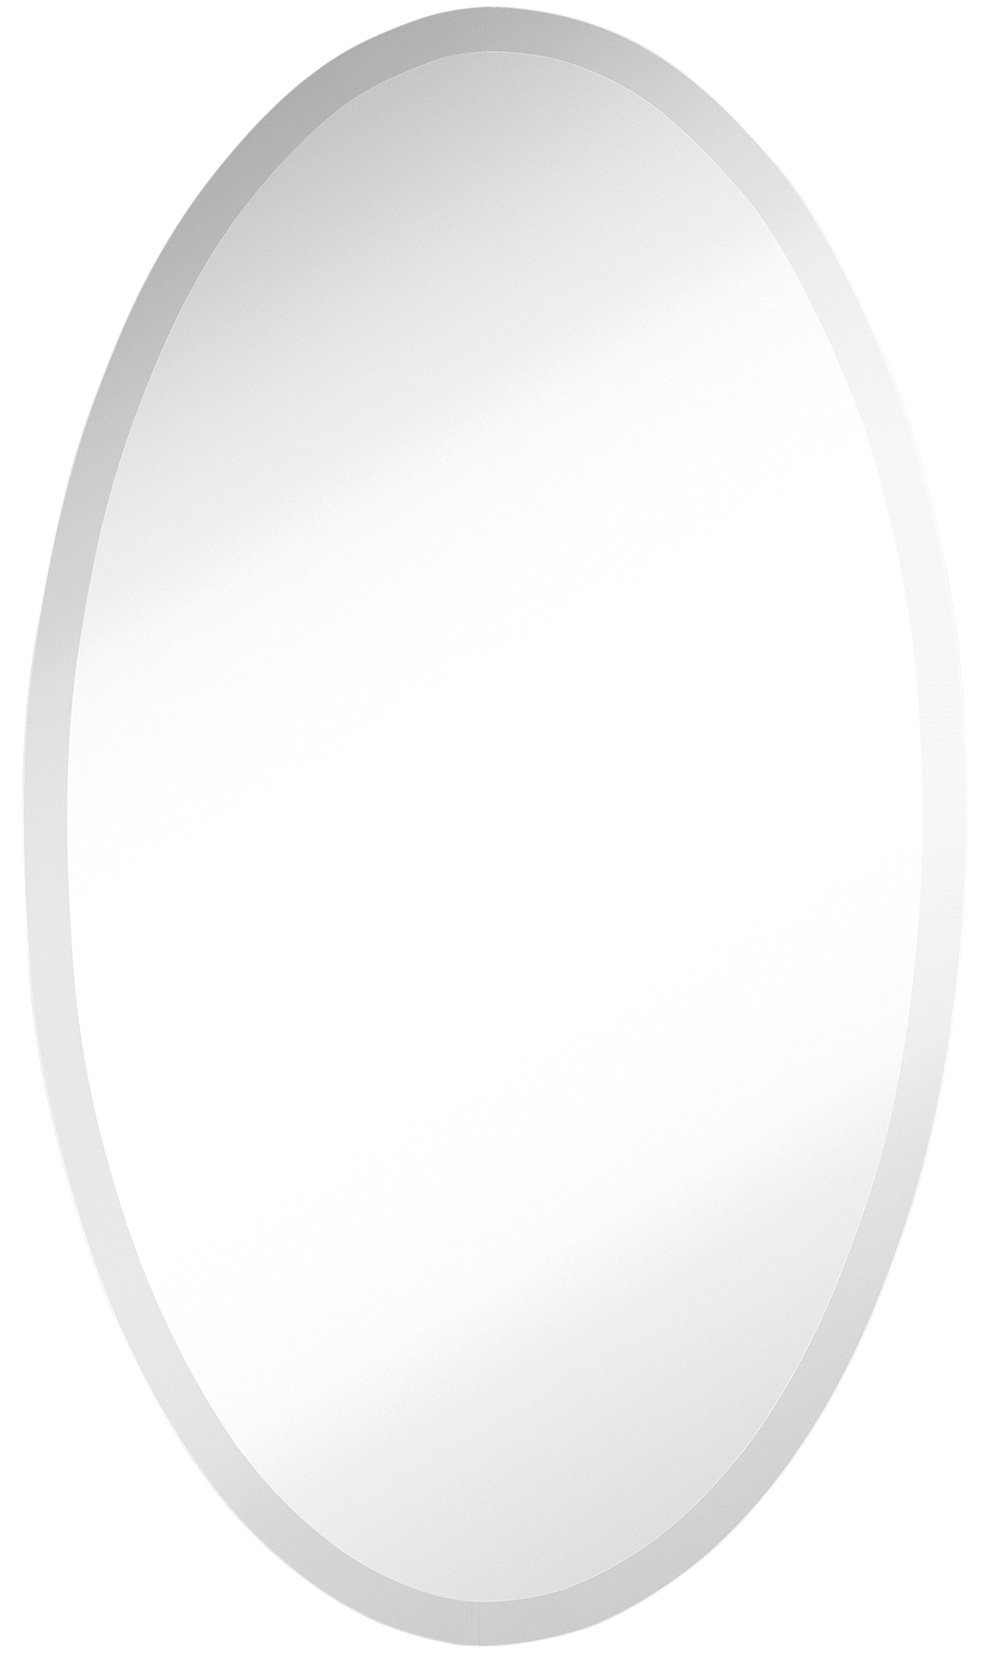 Large Simple Round Streamlined 1 Inch Beveled Oval Wall Mirror   Premium Silver Backed Rounded Mirrored Glass Panel   Vanity, Bedroom, or Bathroom   Frameless HangsHorizontal or Vertical (24'' x 36'')